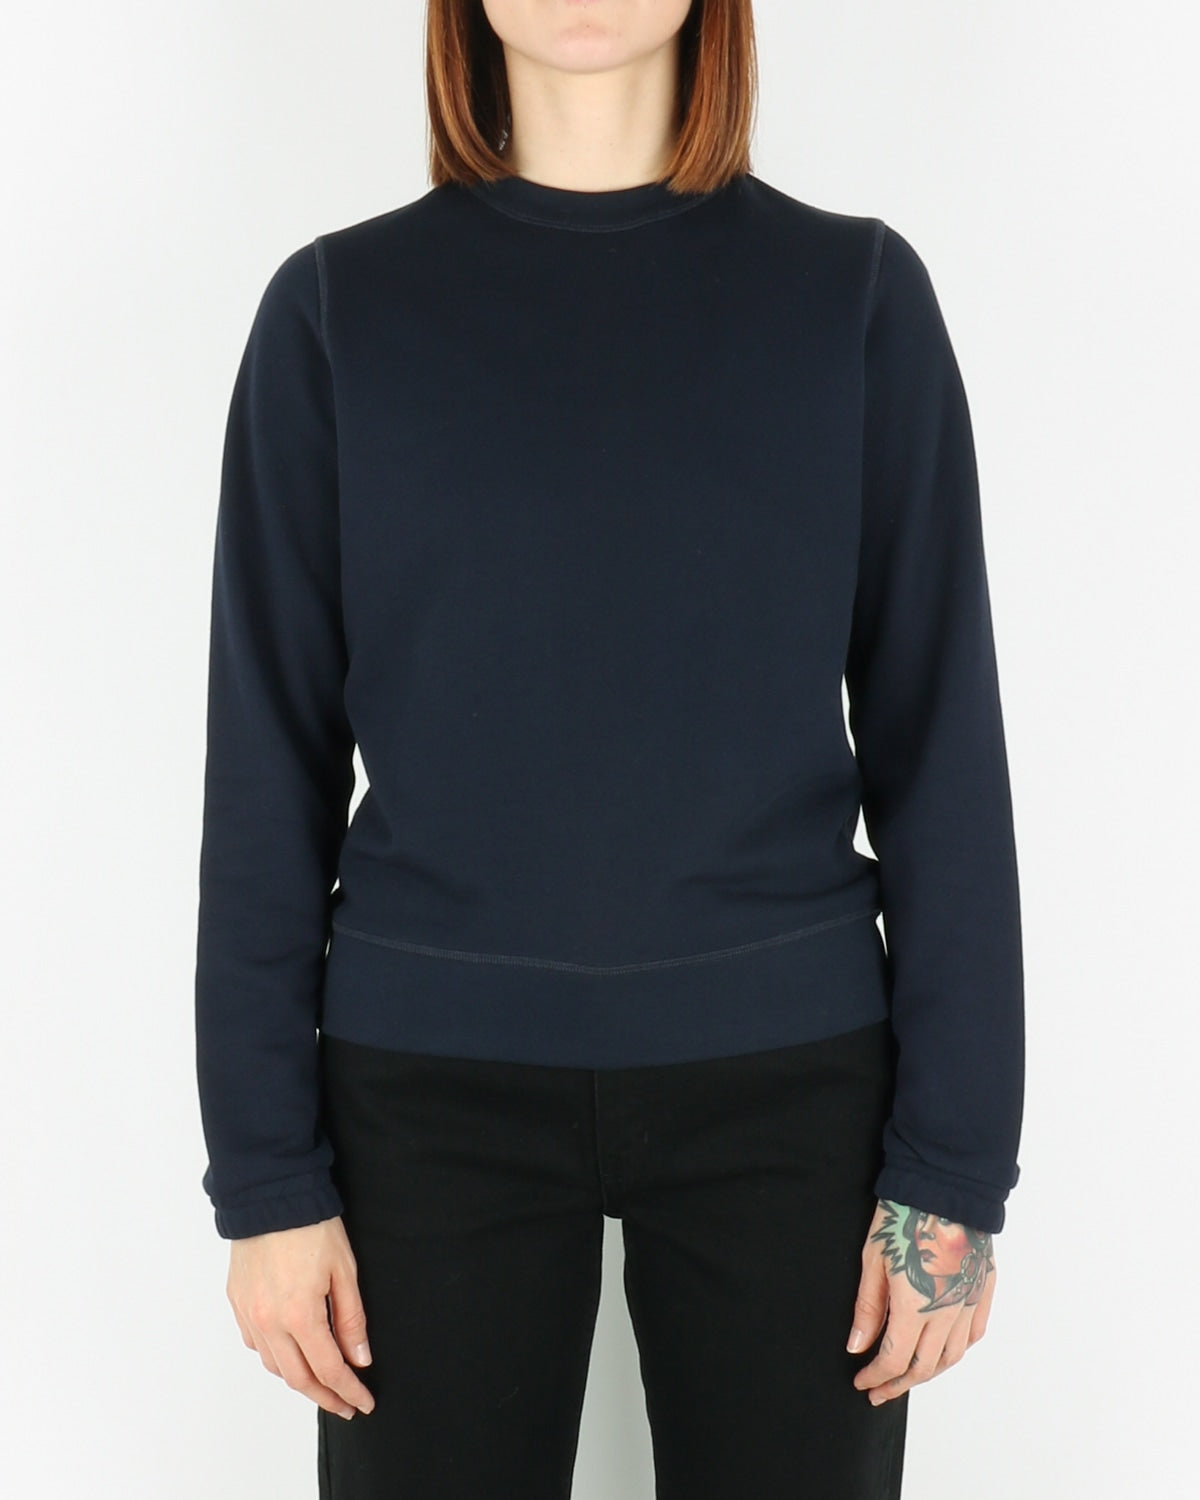 norse projects_elena sweat_dark navy_view_1_3